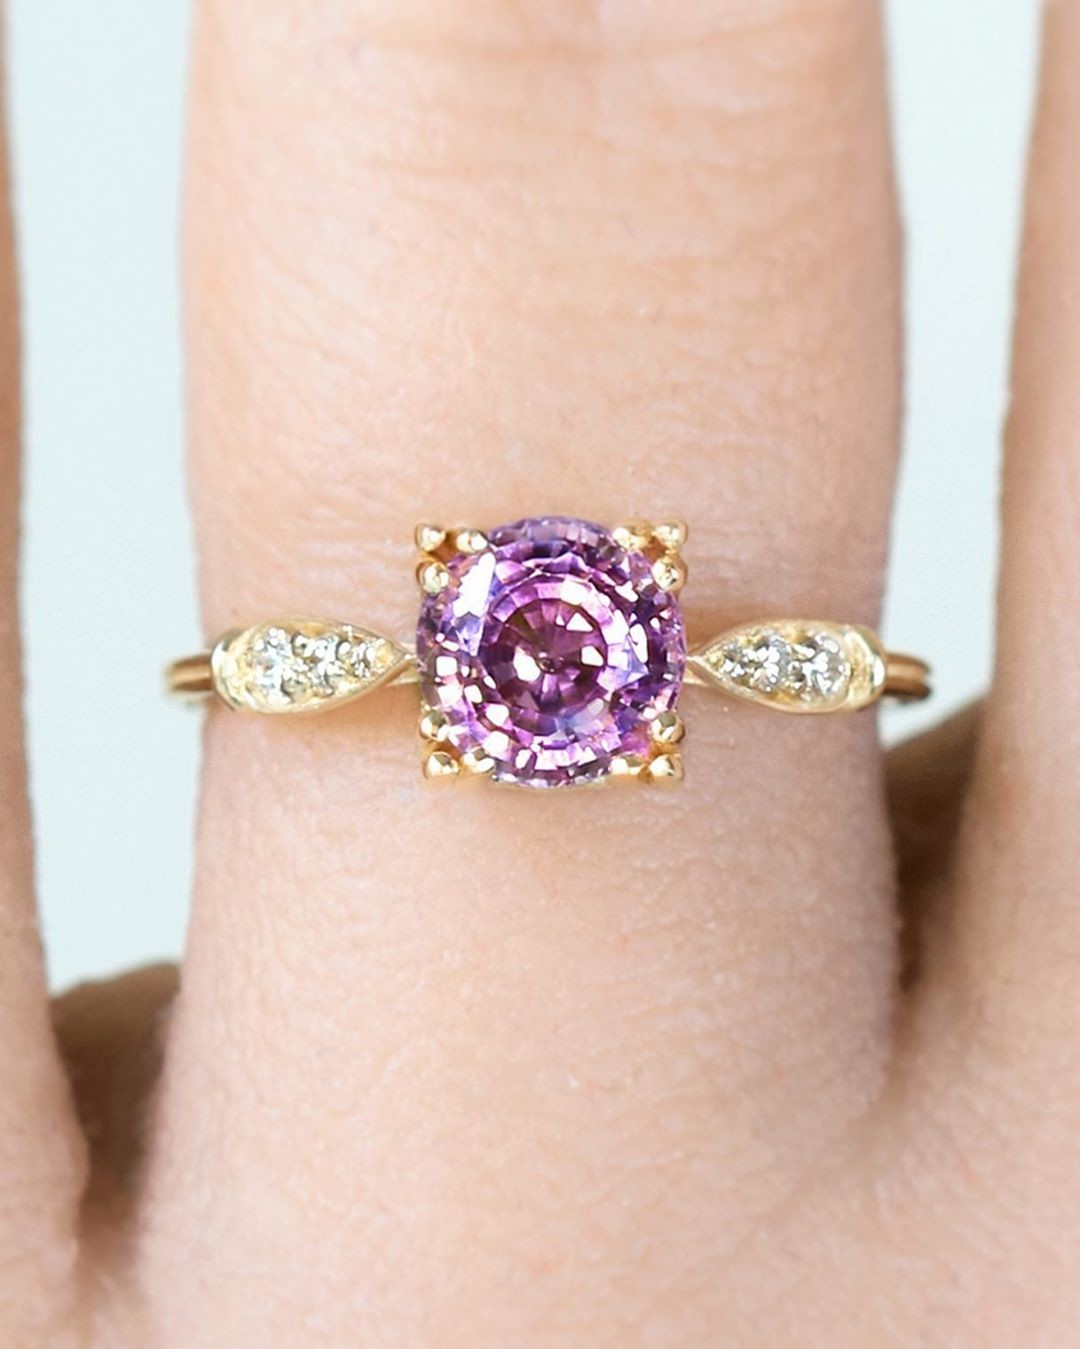 💕💫 Purple Pink Natural Untreated sparkling spinel from Tanzania.. please be still my heart 💜